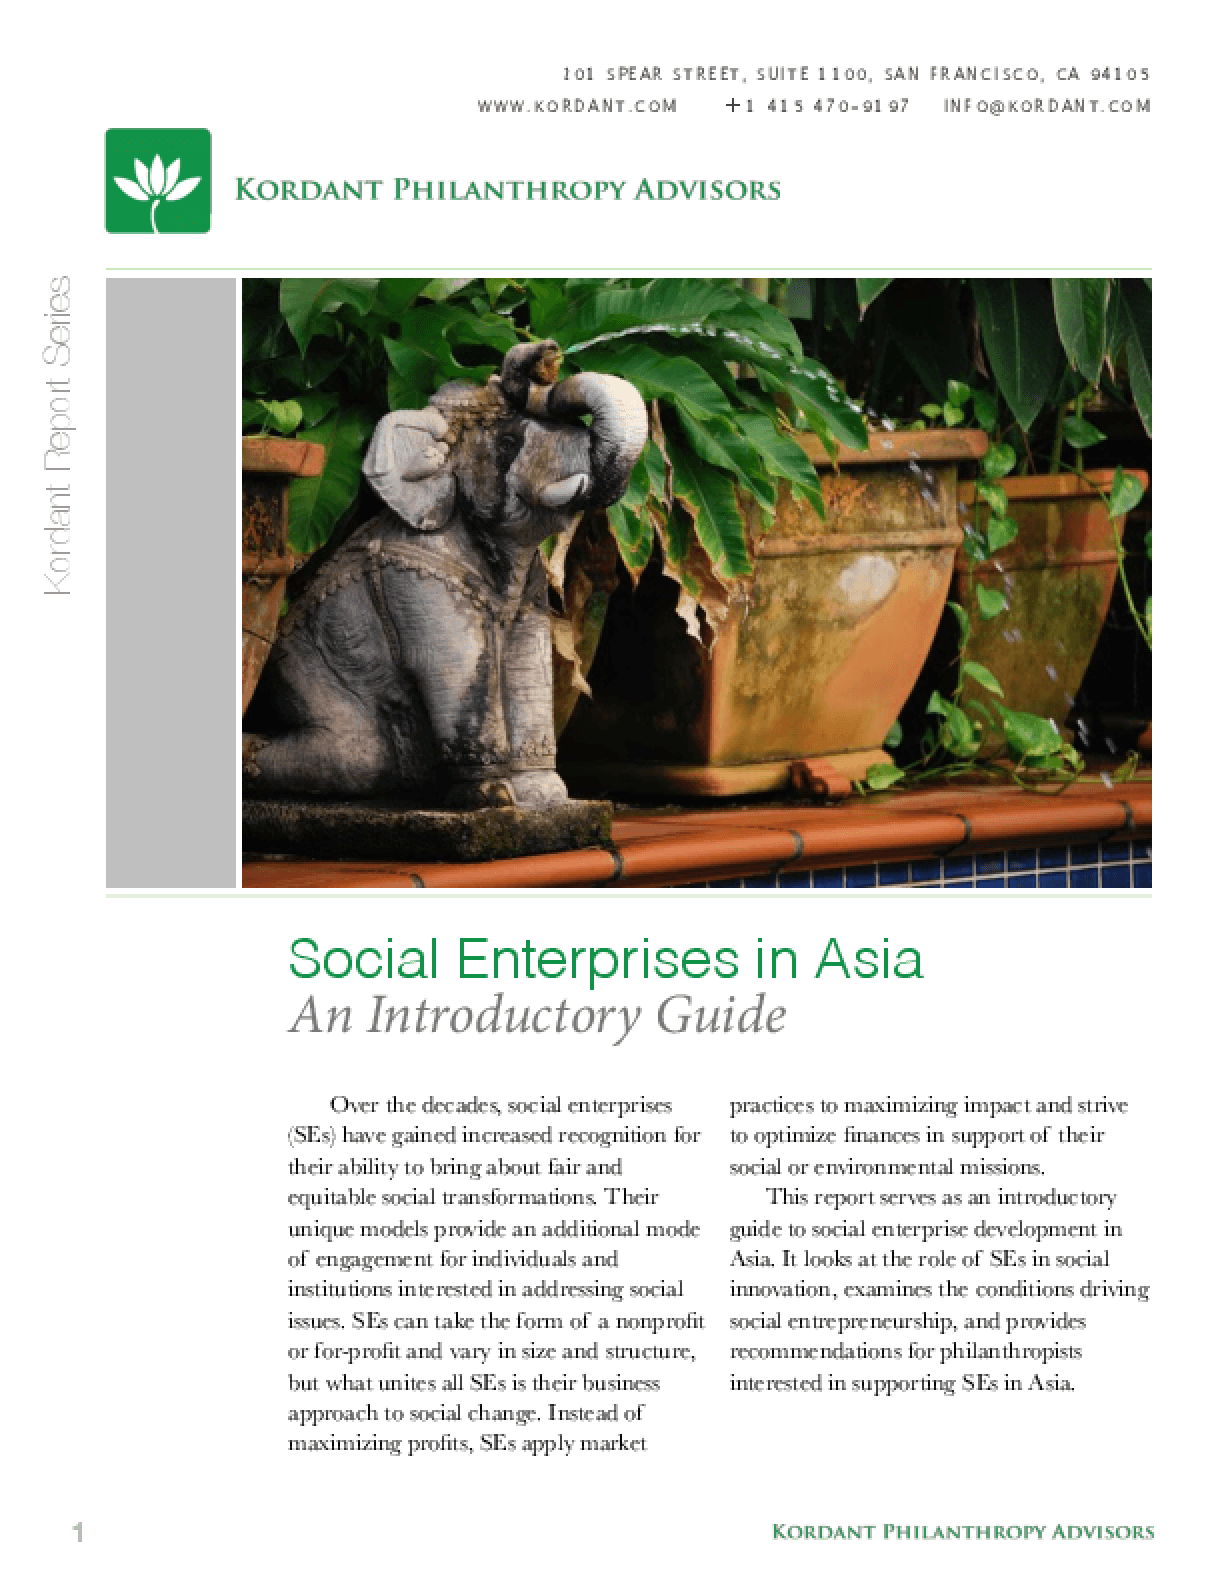 Social Enterprises in Asia: An Introductory Guide